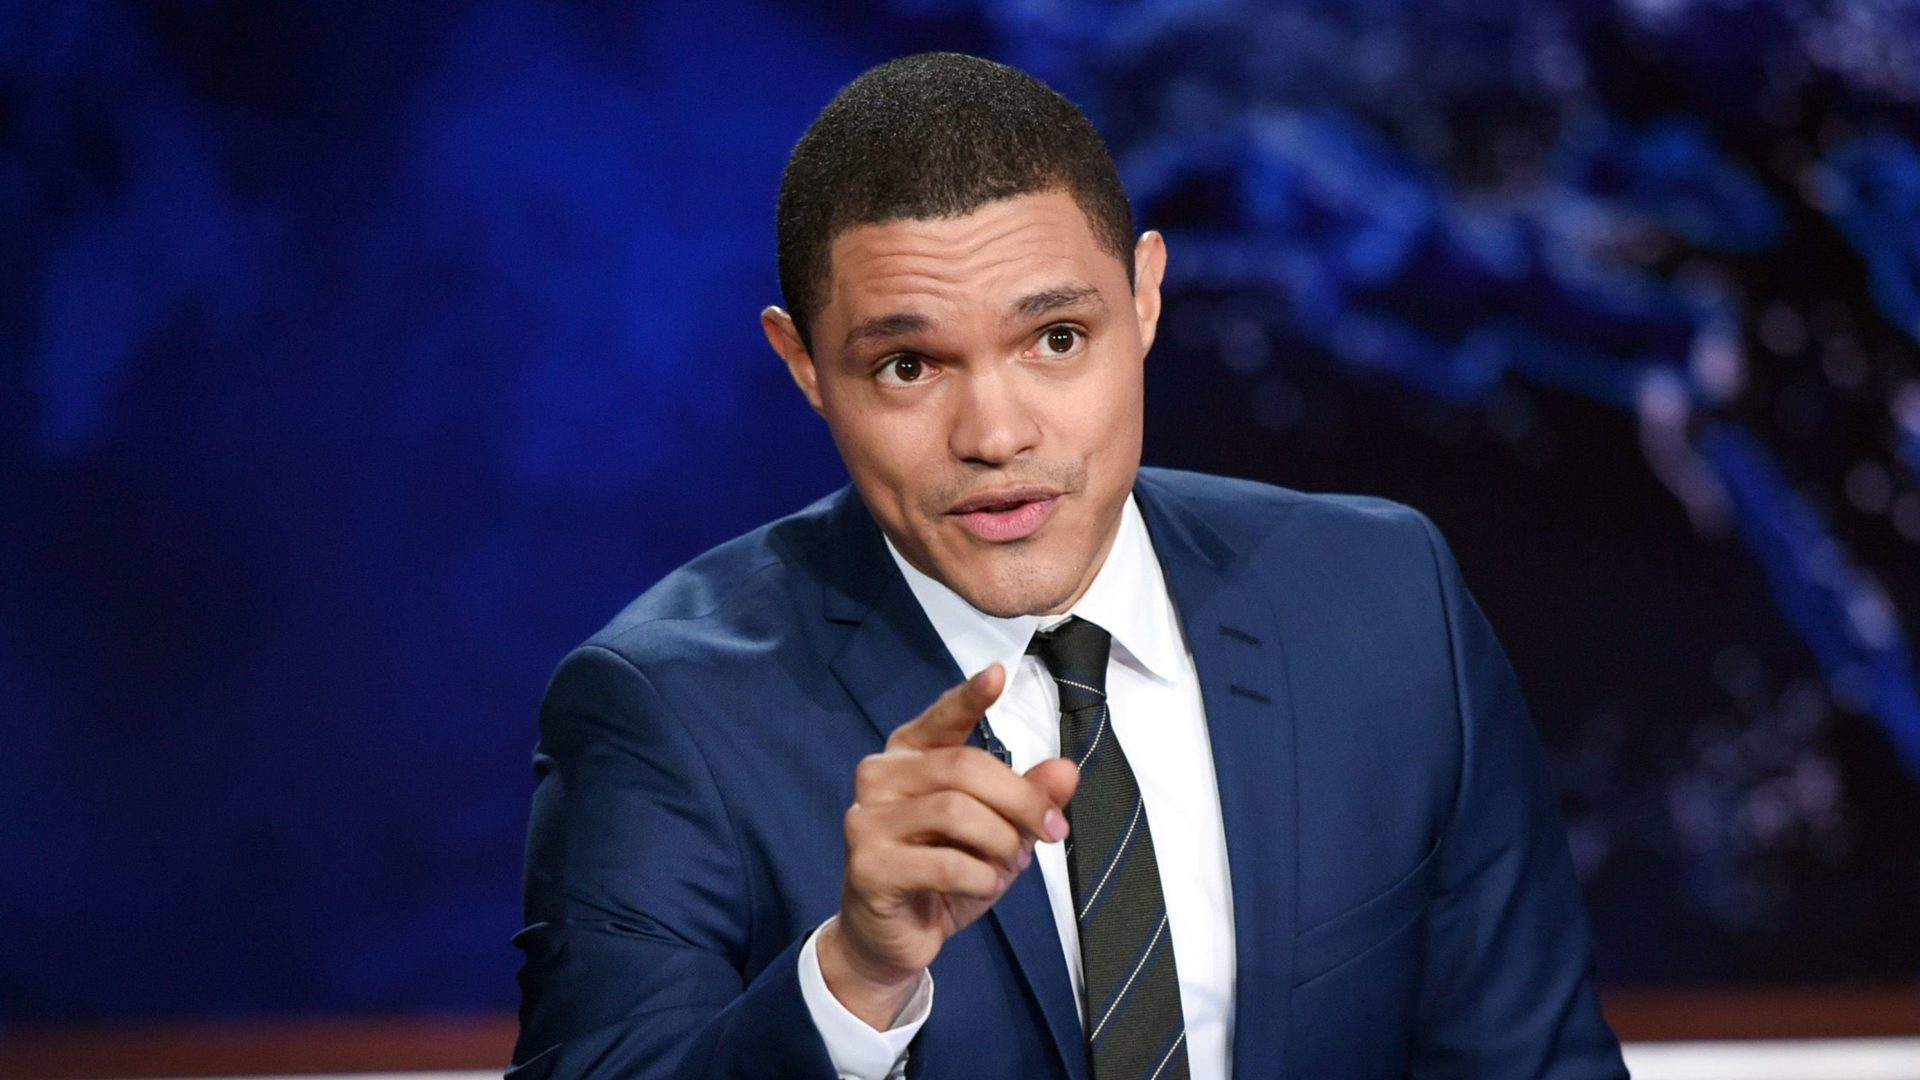 Television host and comedian, Trevor Noah, is developing a film about Tanitoluwa 'Tani' Adewumi, the eight-year-old Nigerian chess prodigy.